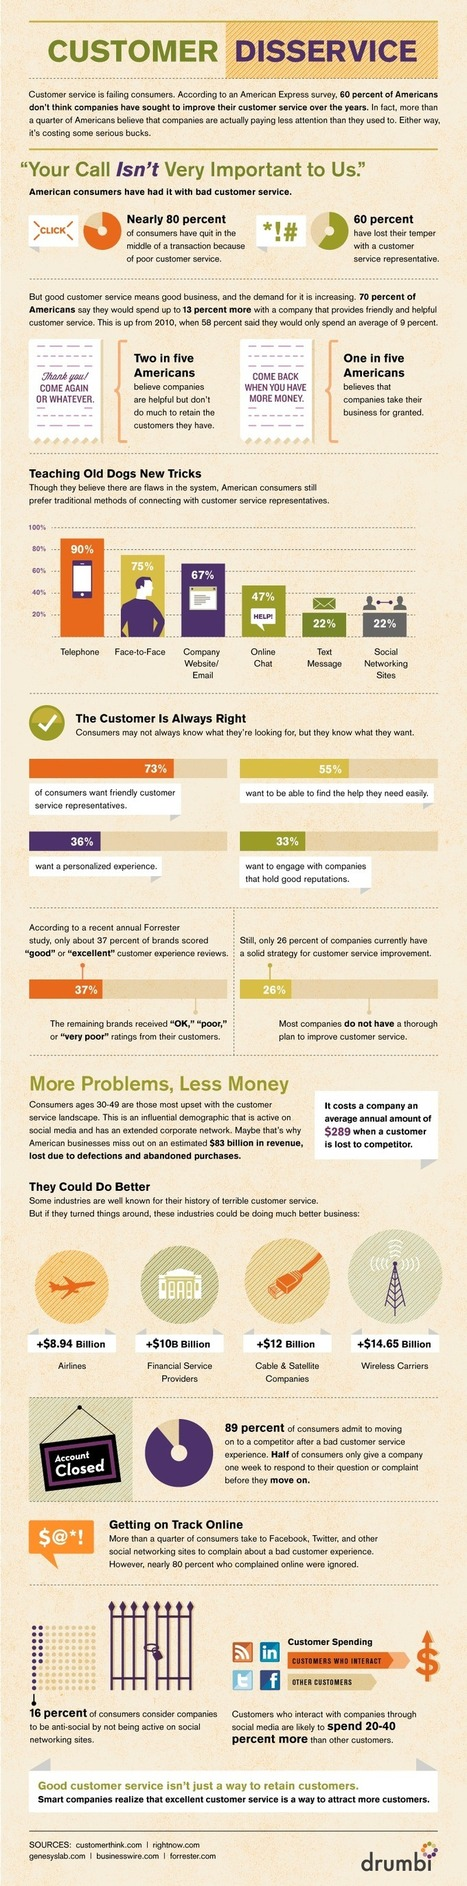 What Really Creates Customer Loyalty? (Infographic) - Business 2 Community | Gamification & Employee Engagement | Scoop.it